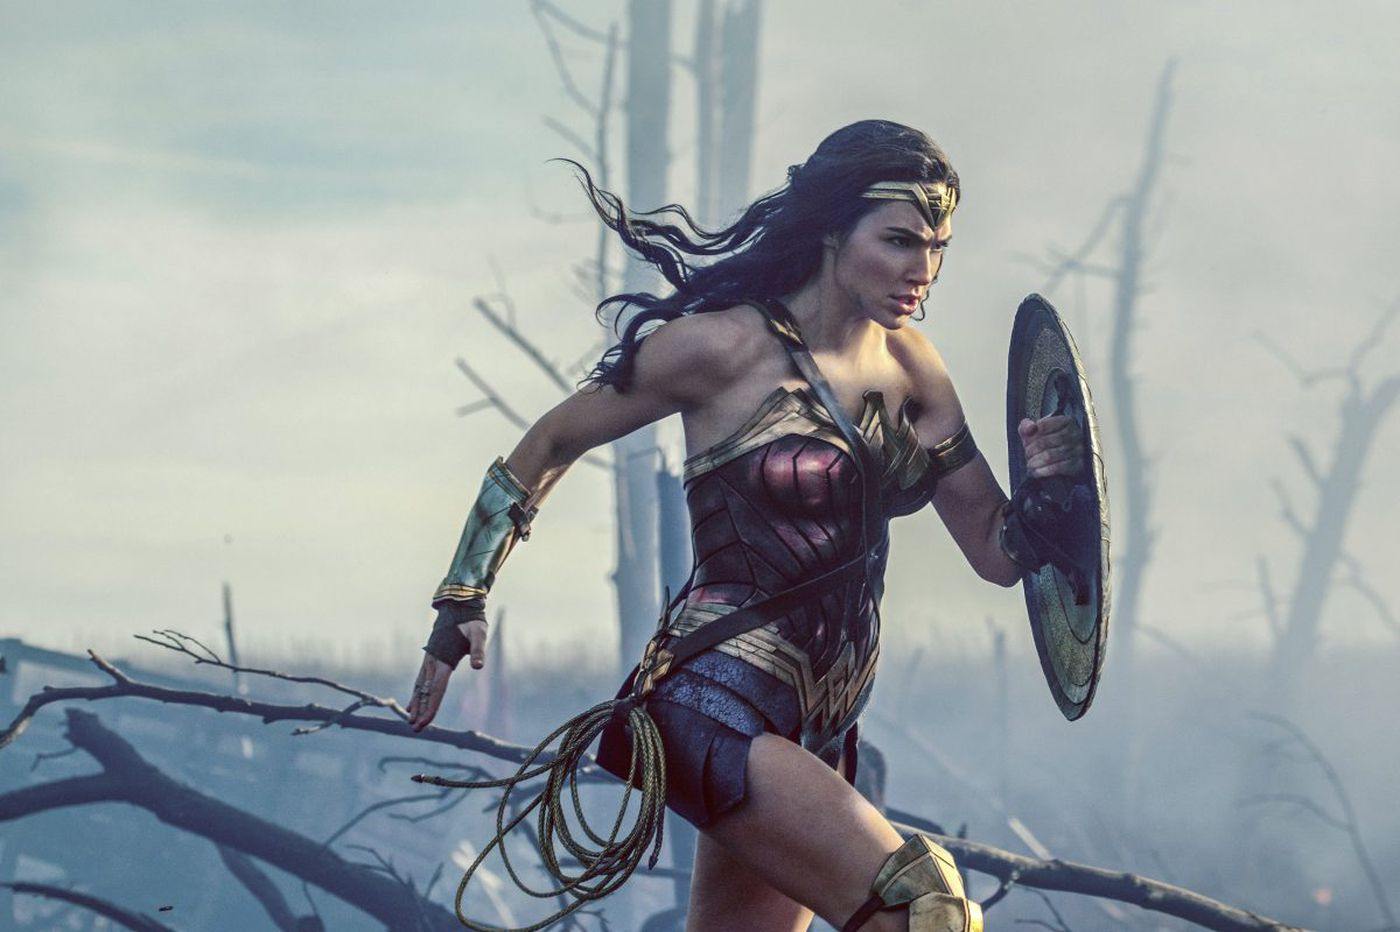 10 reasons 'Wonder Woman' is set to dominate the summer